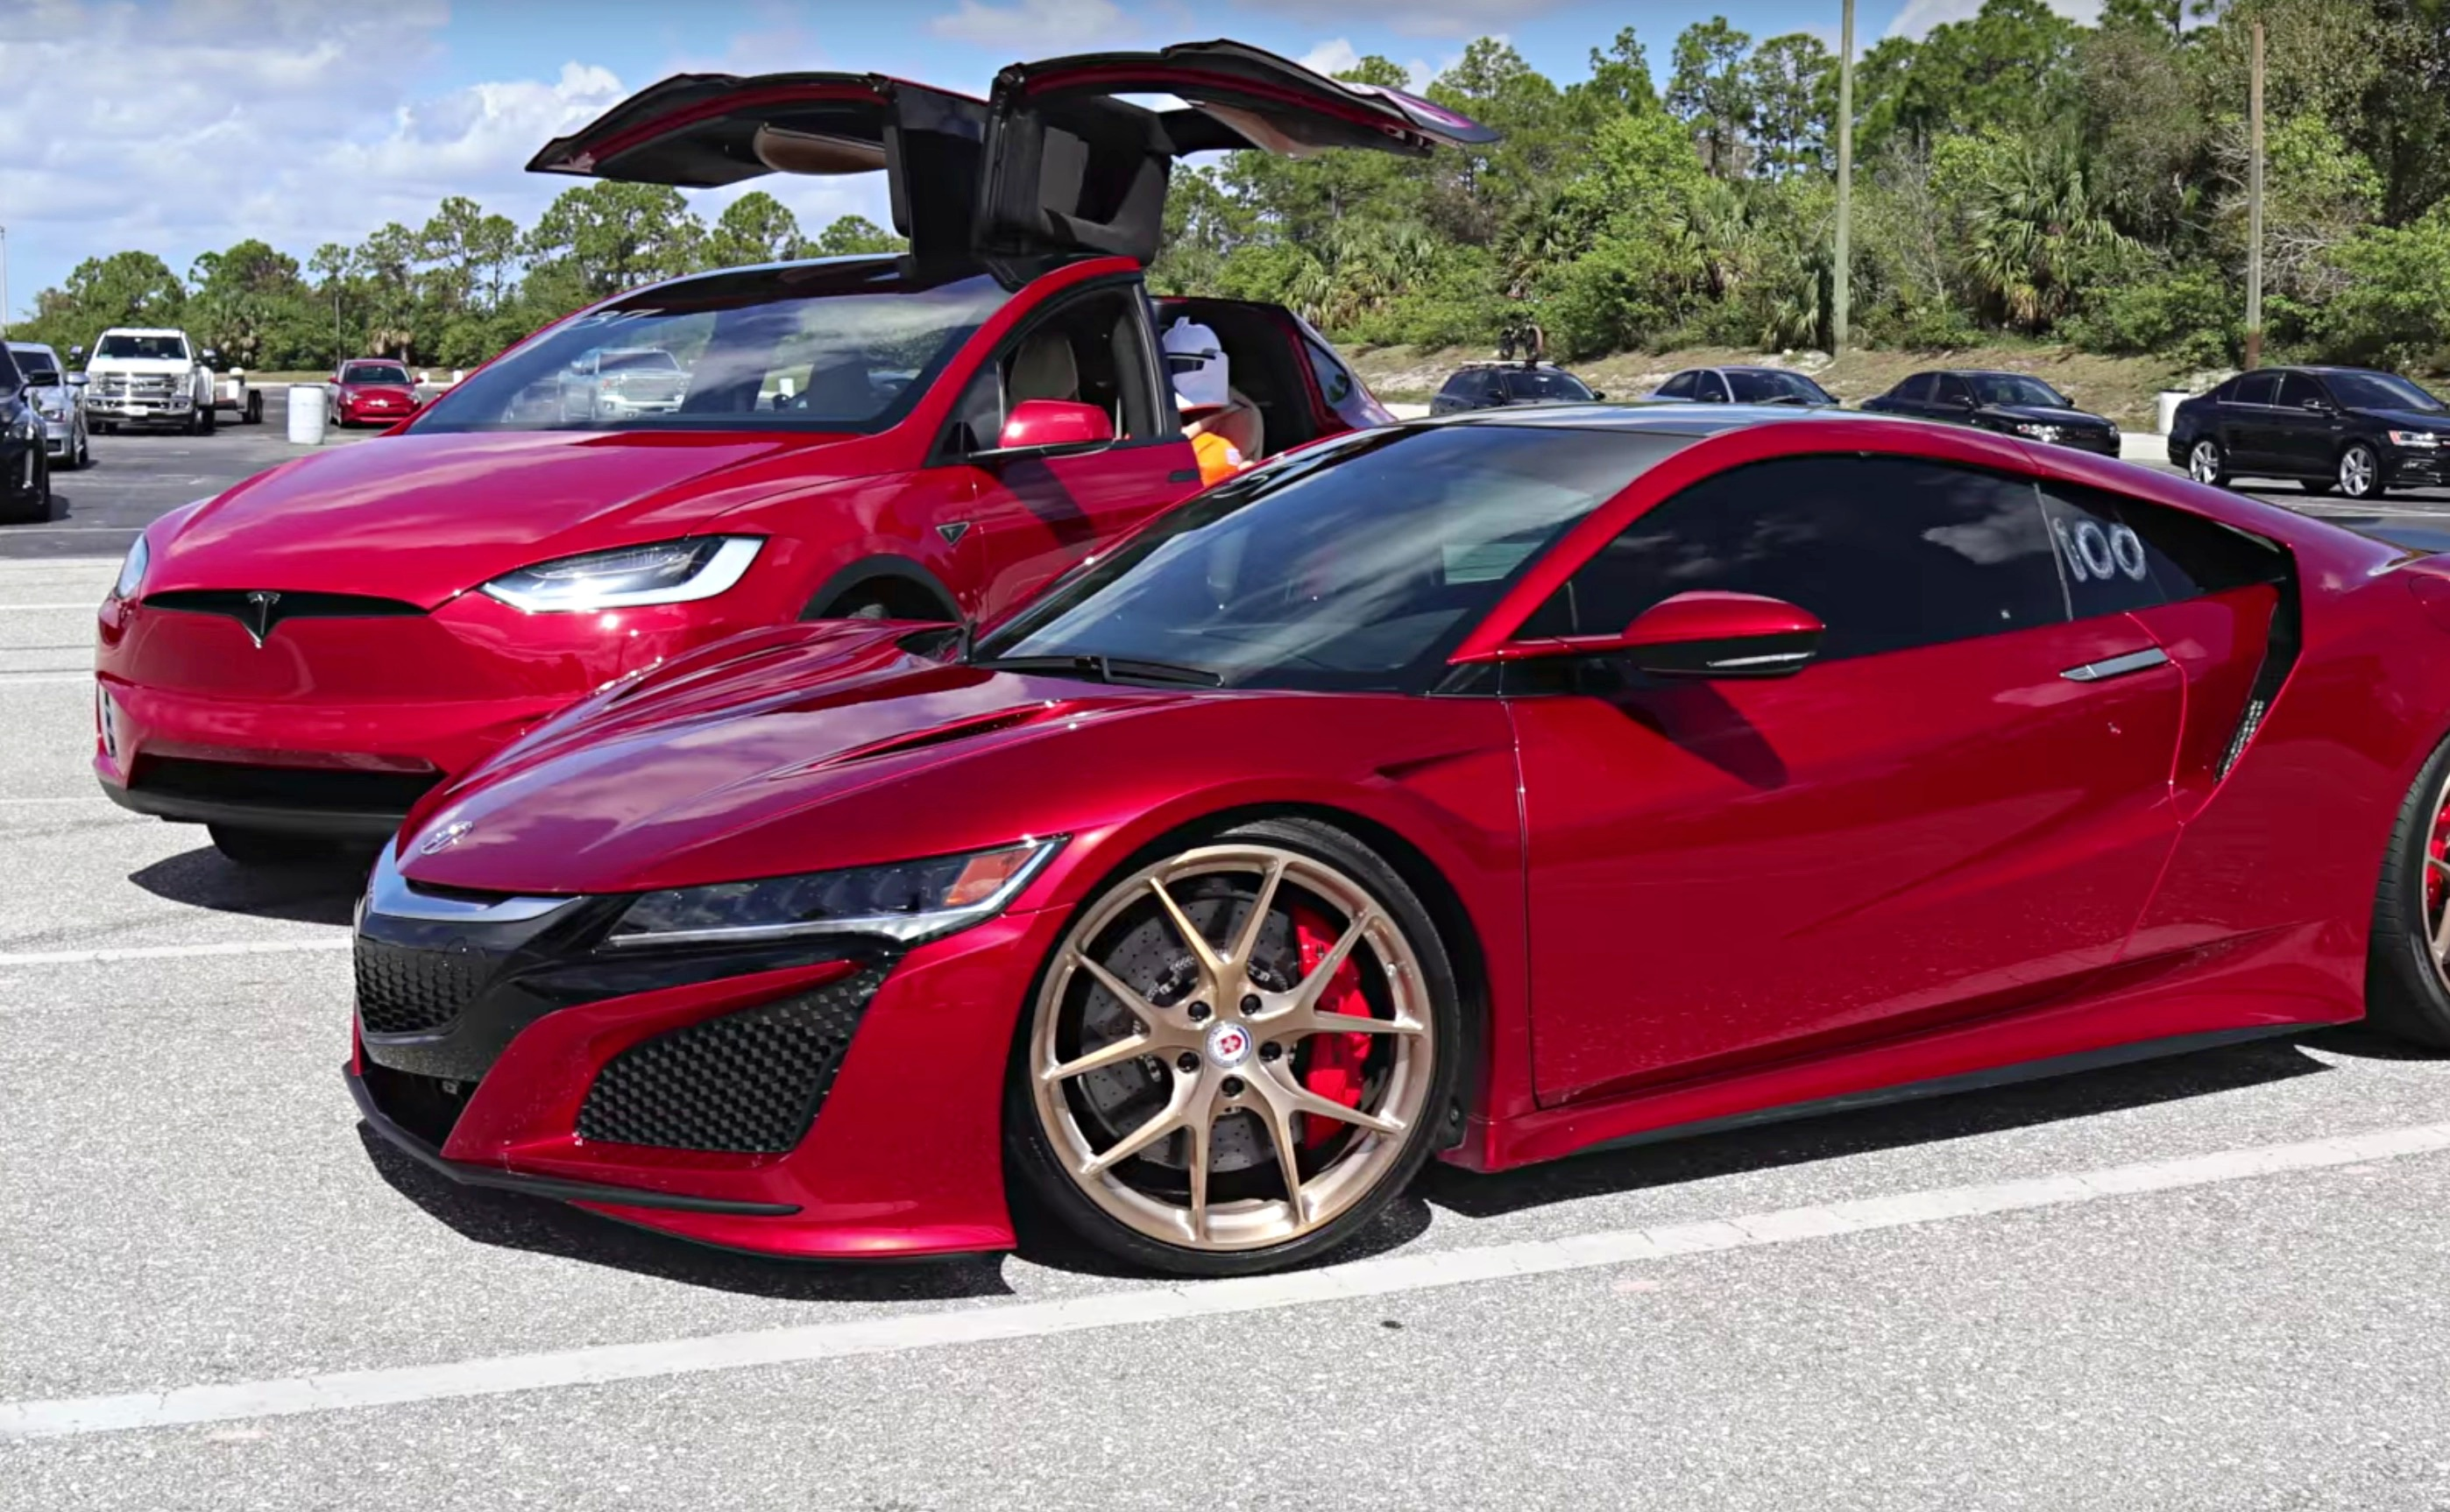 model-x-vs-acura-nsx-drag-race